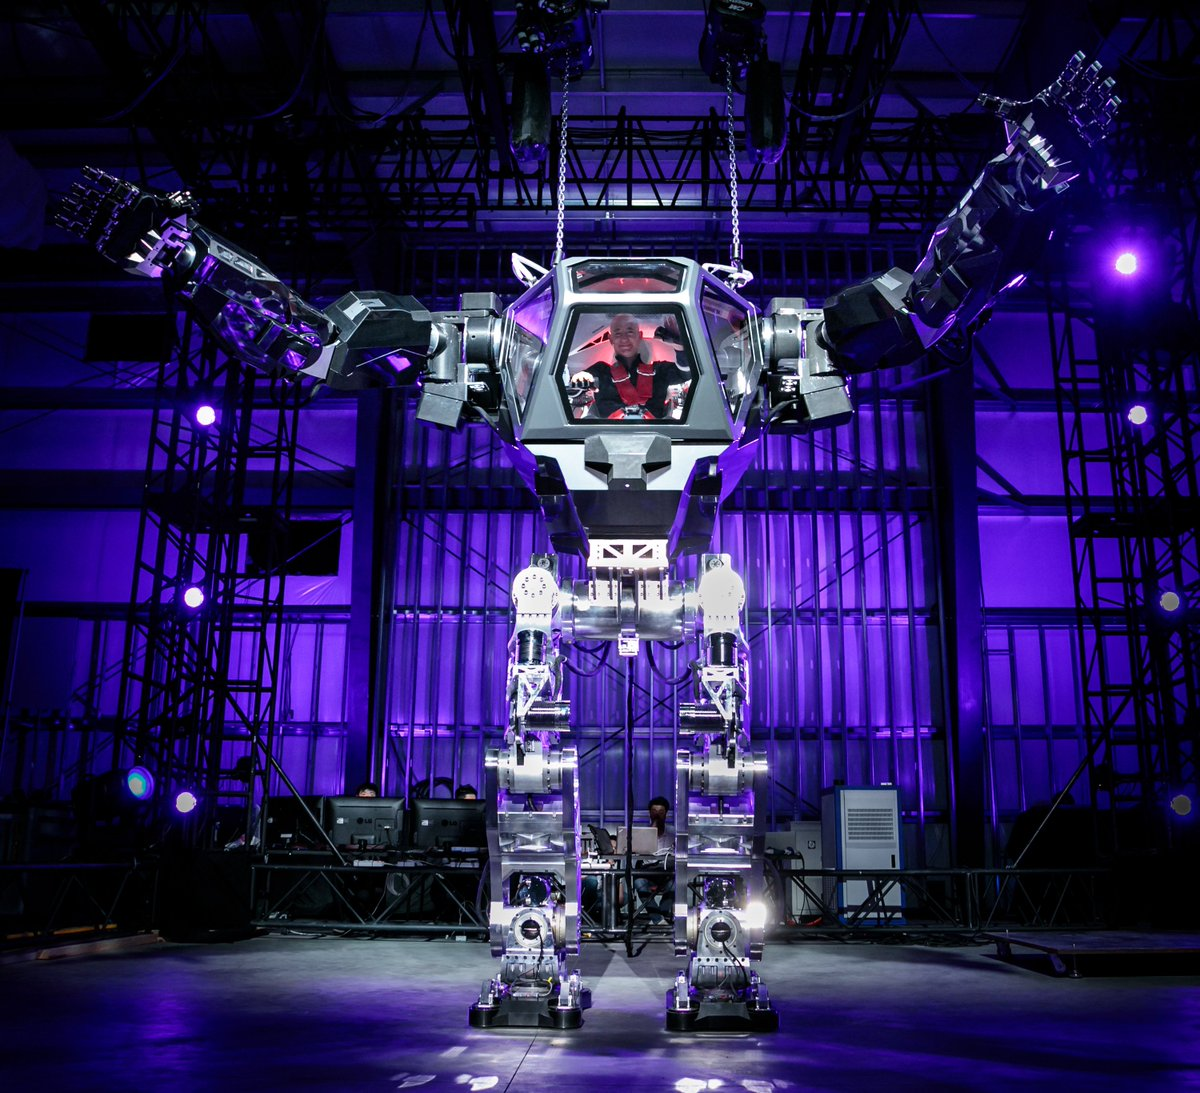 Jeff Bezos suits up in giant robot armor as Amazon prepares to take over the world